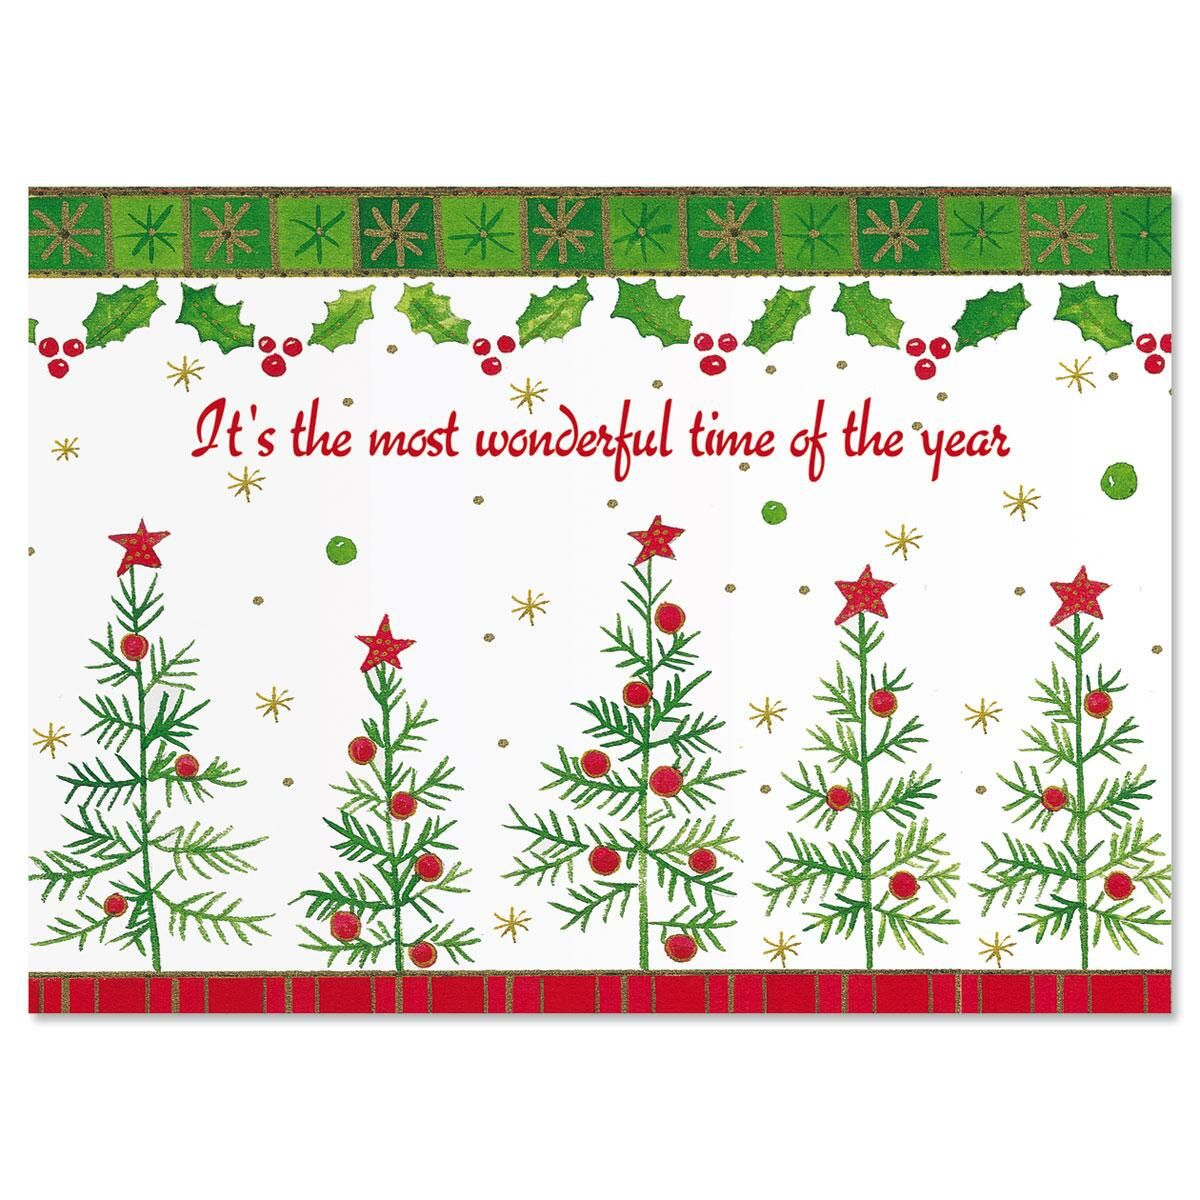 Whimsy Trees Nonpersonalized Christmas Card - Set of 72